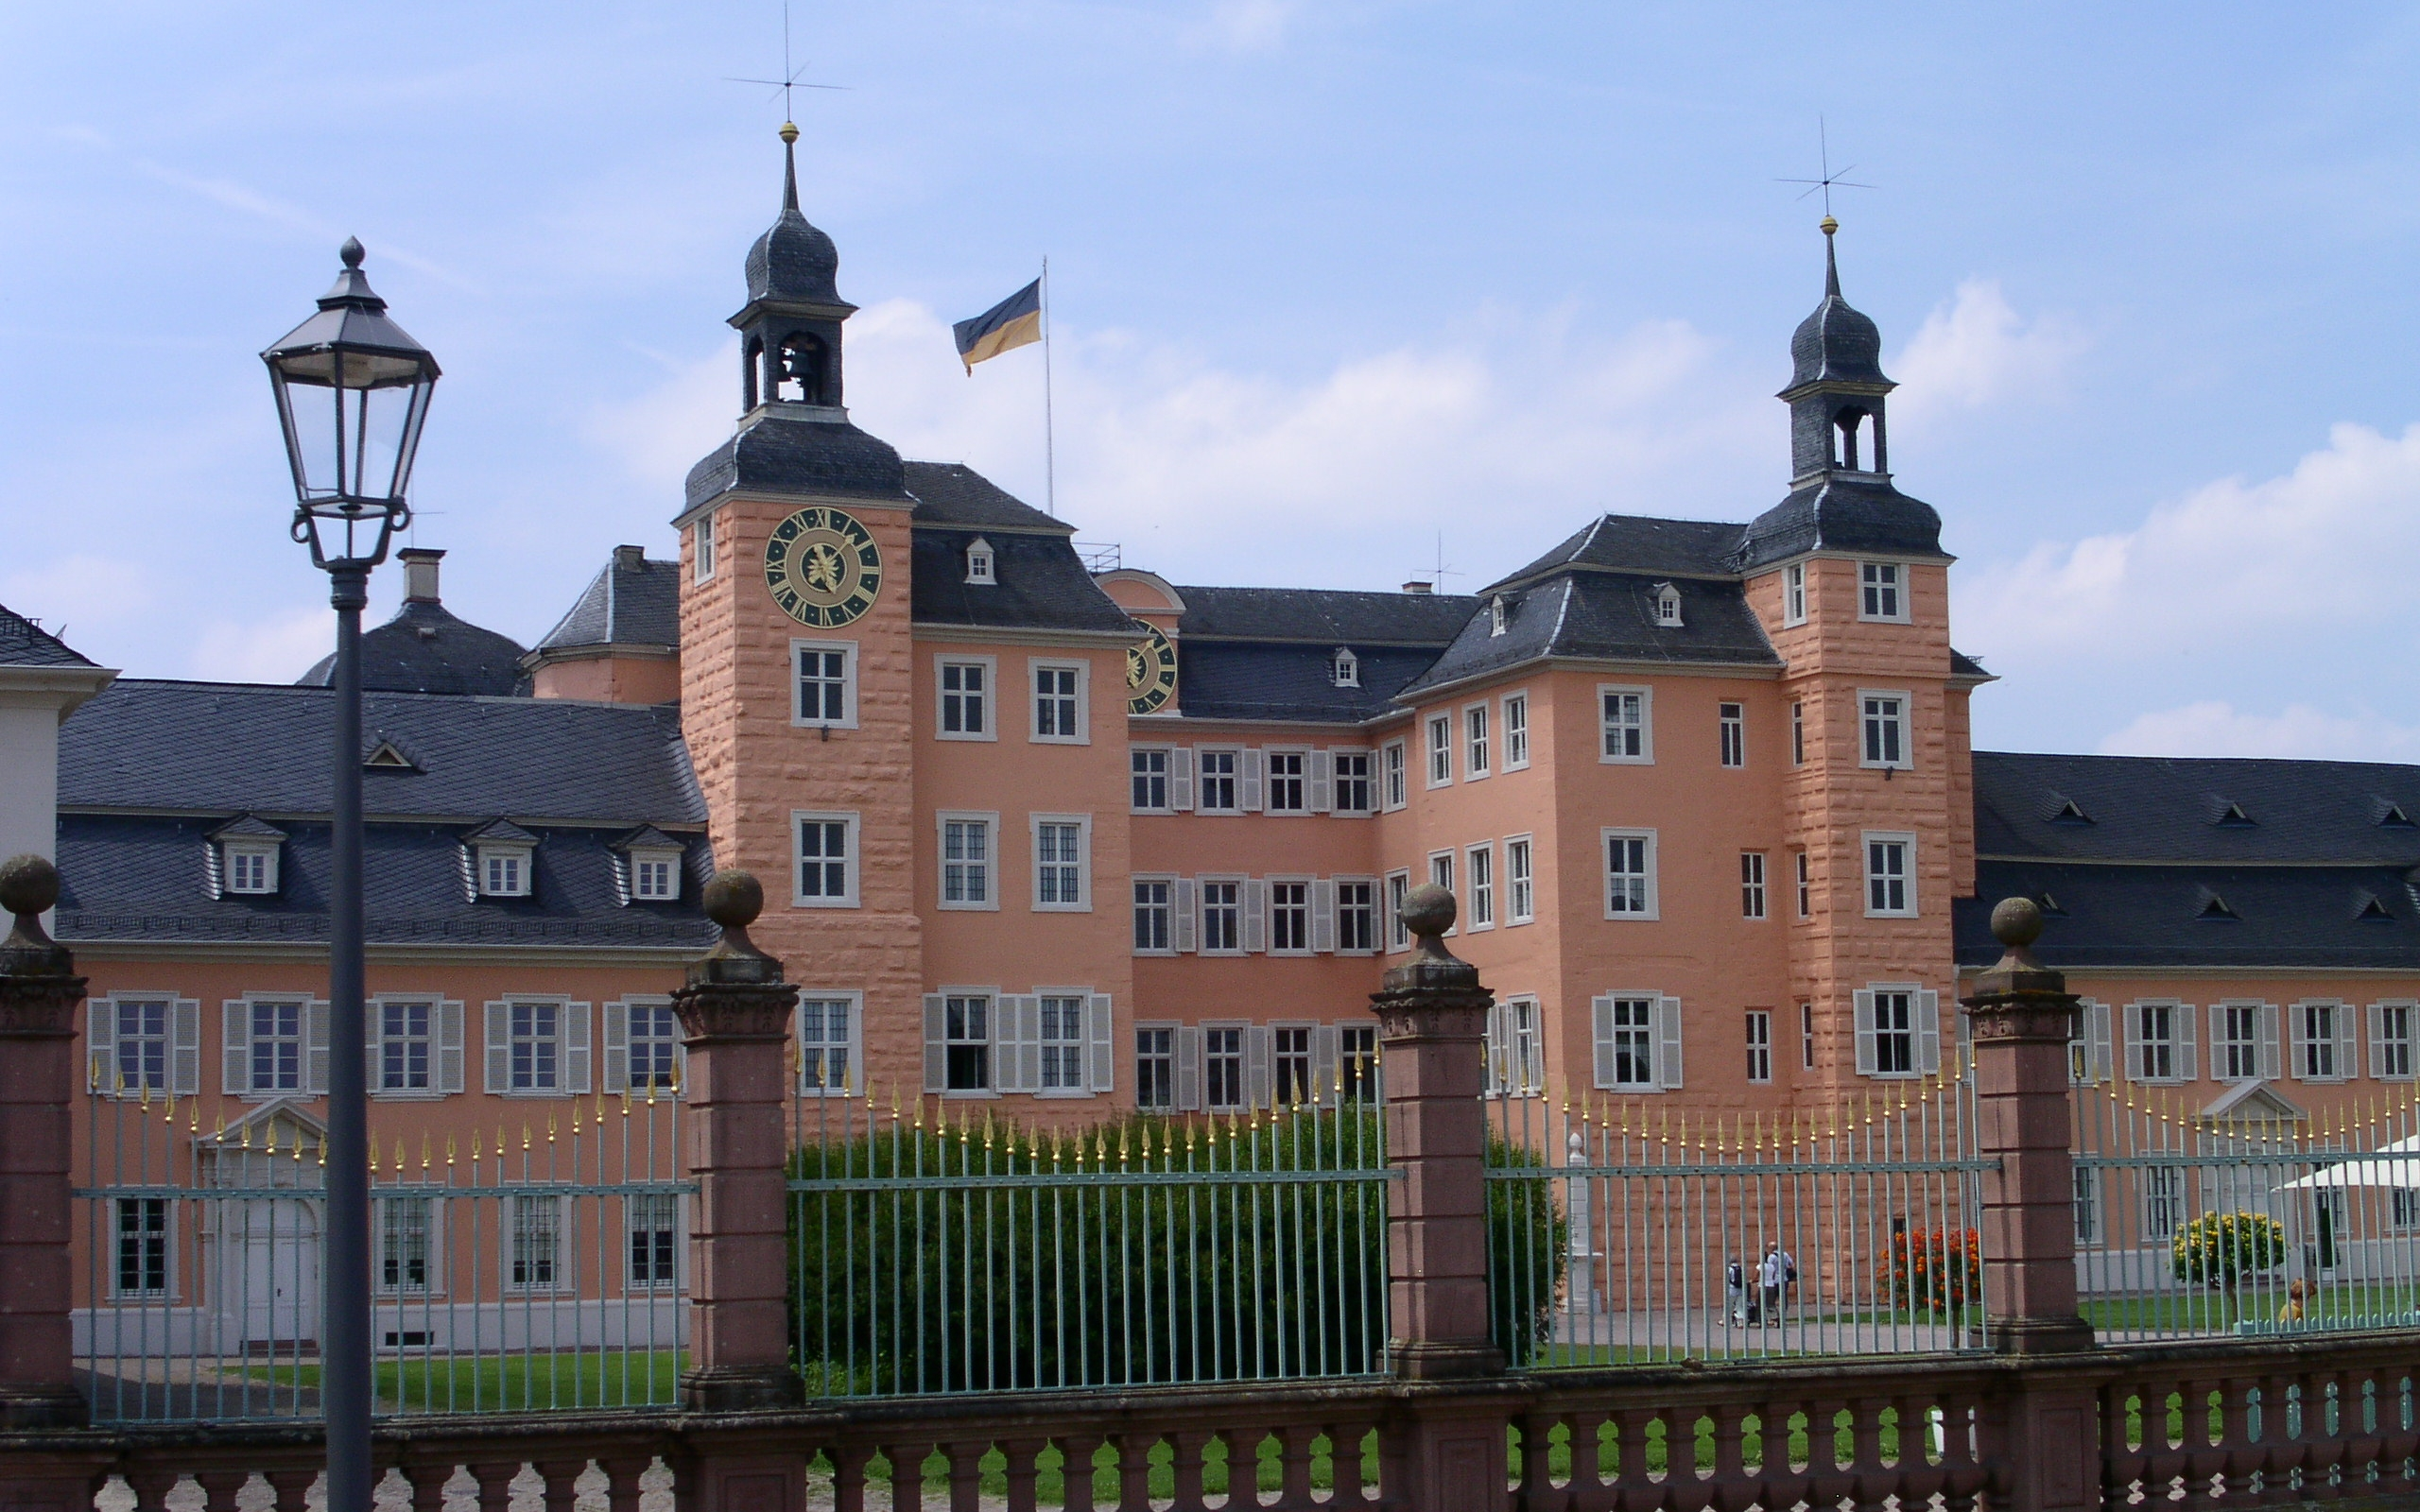 Man Made Schwetzingen Palace 2560x1600